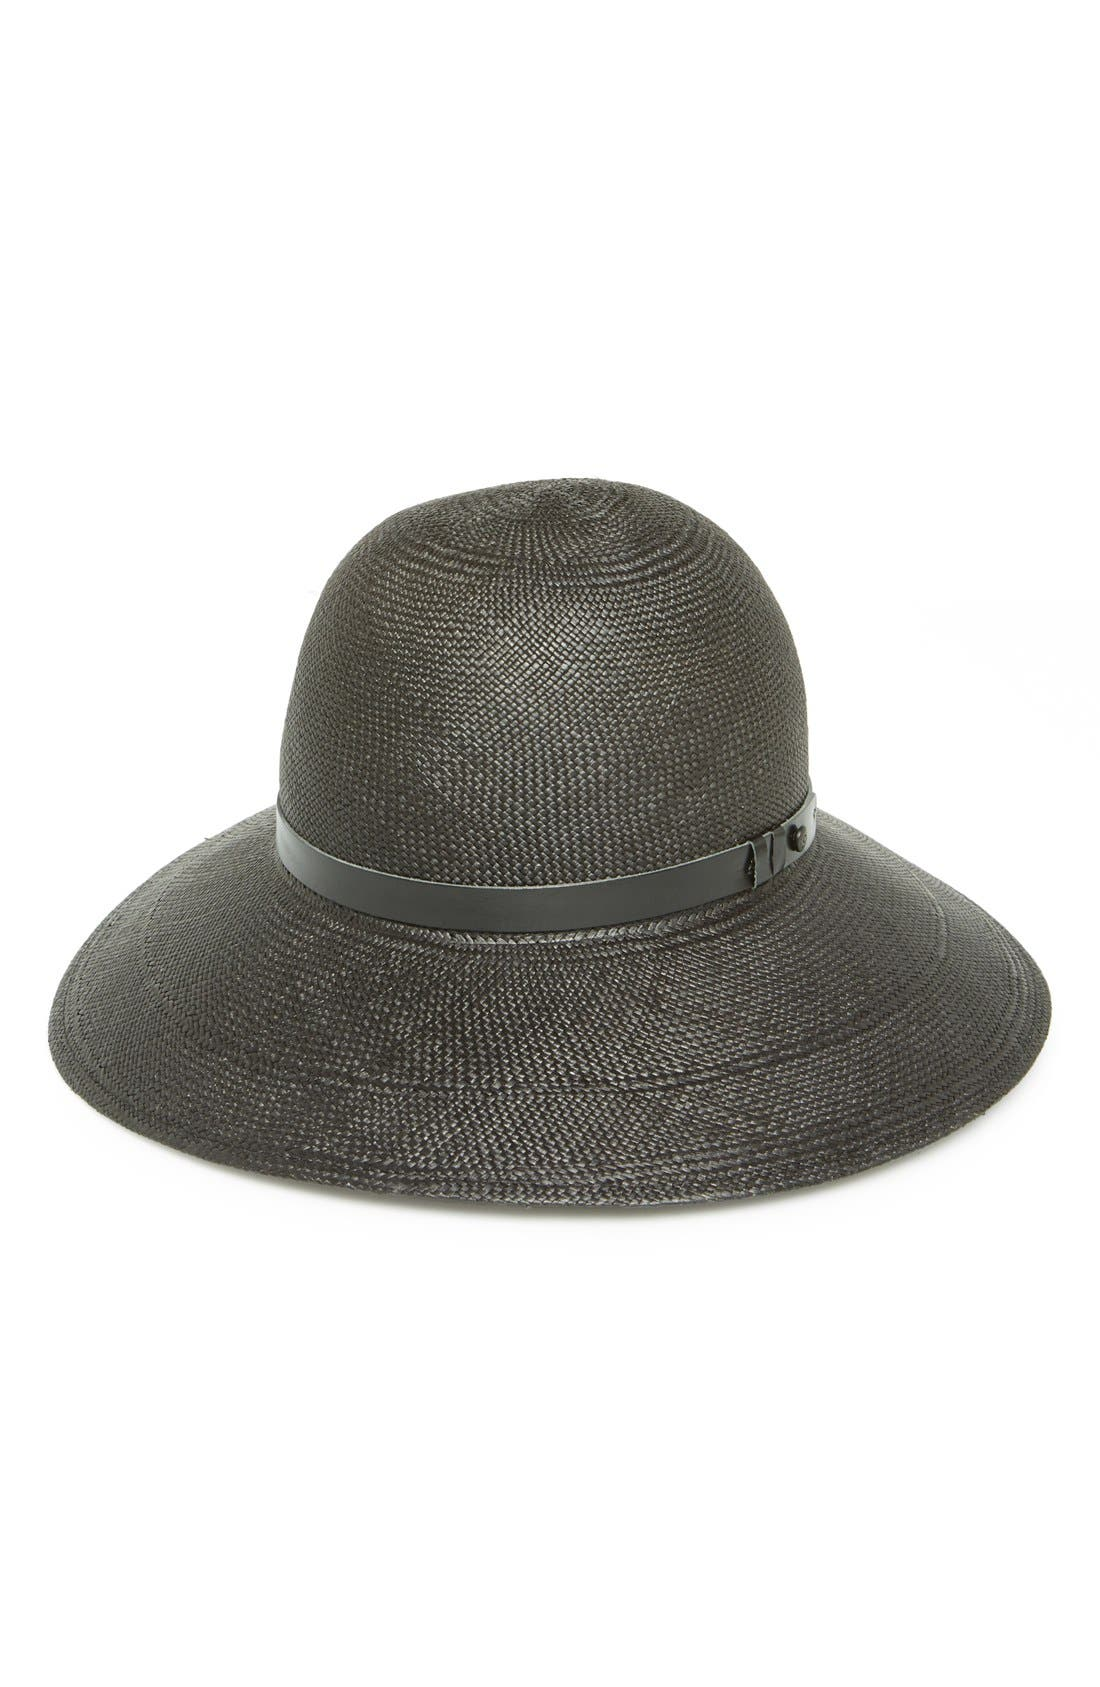 Alternate Image 2  - rag & bone 'Beach' Wide Brim Straw Hat